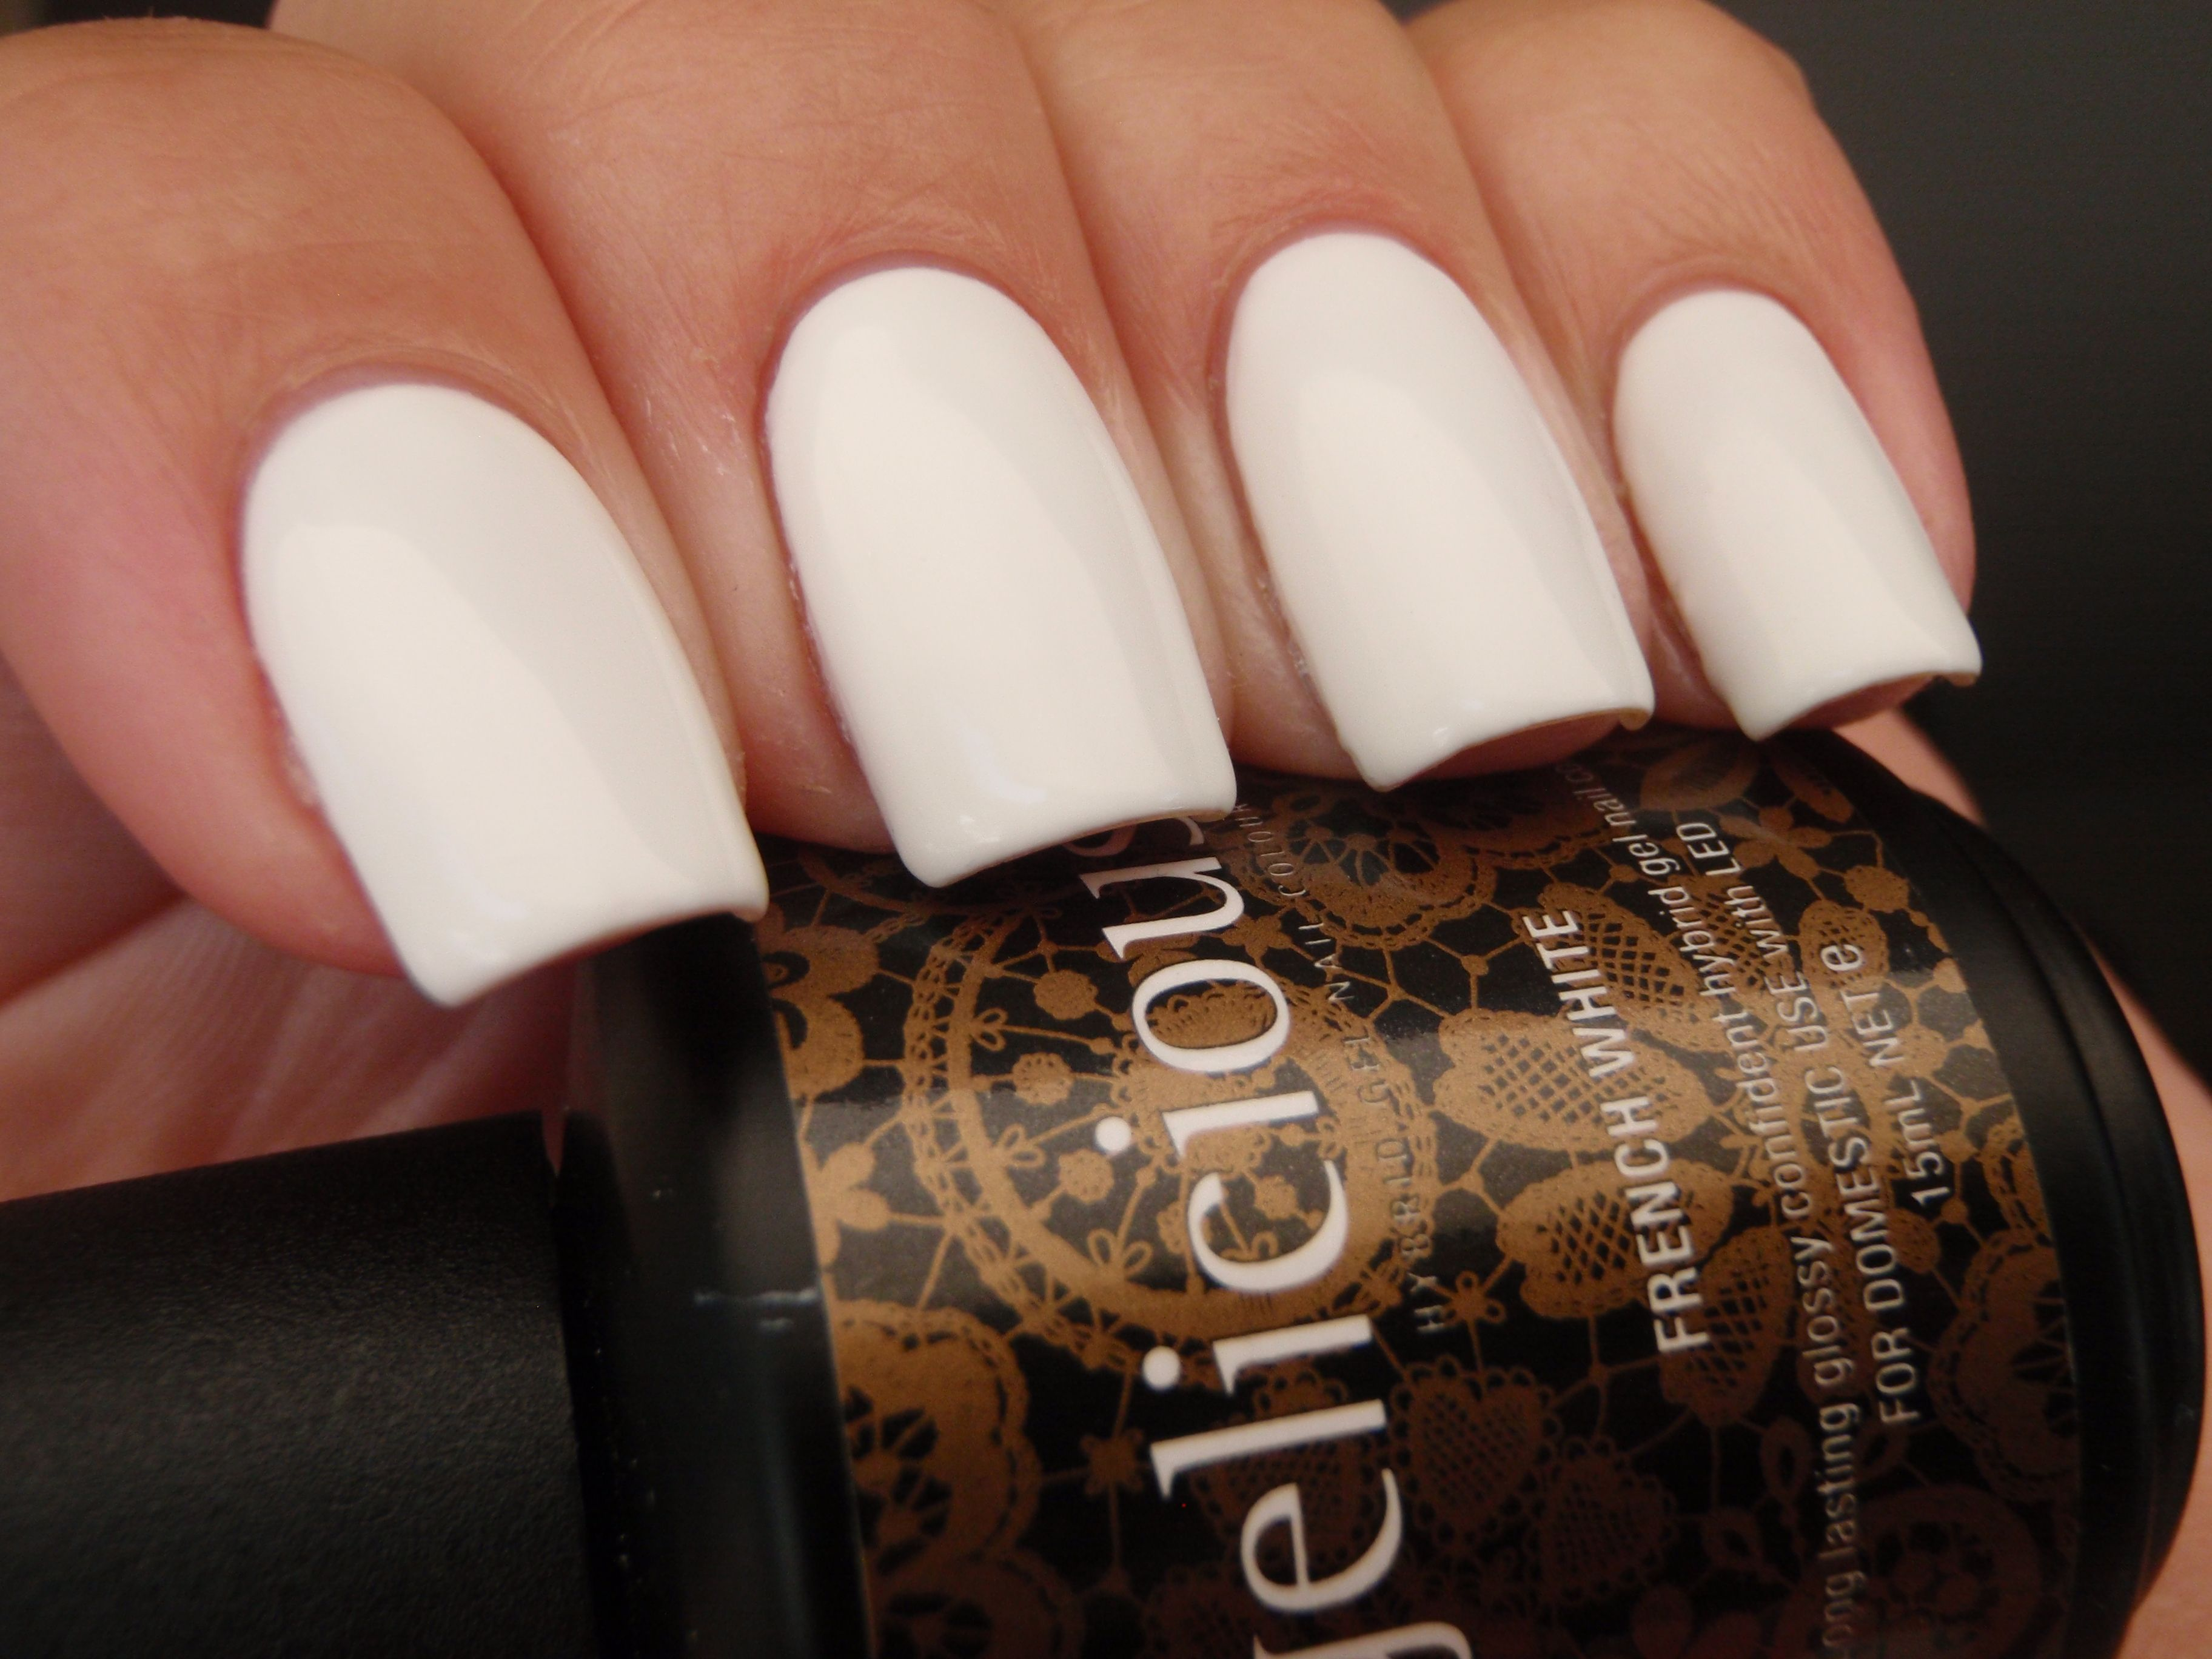 gelicious FRENCH WHITE | gelicious colours | Pinterest | Gel nail ...